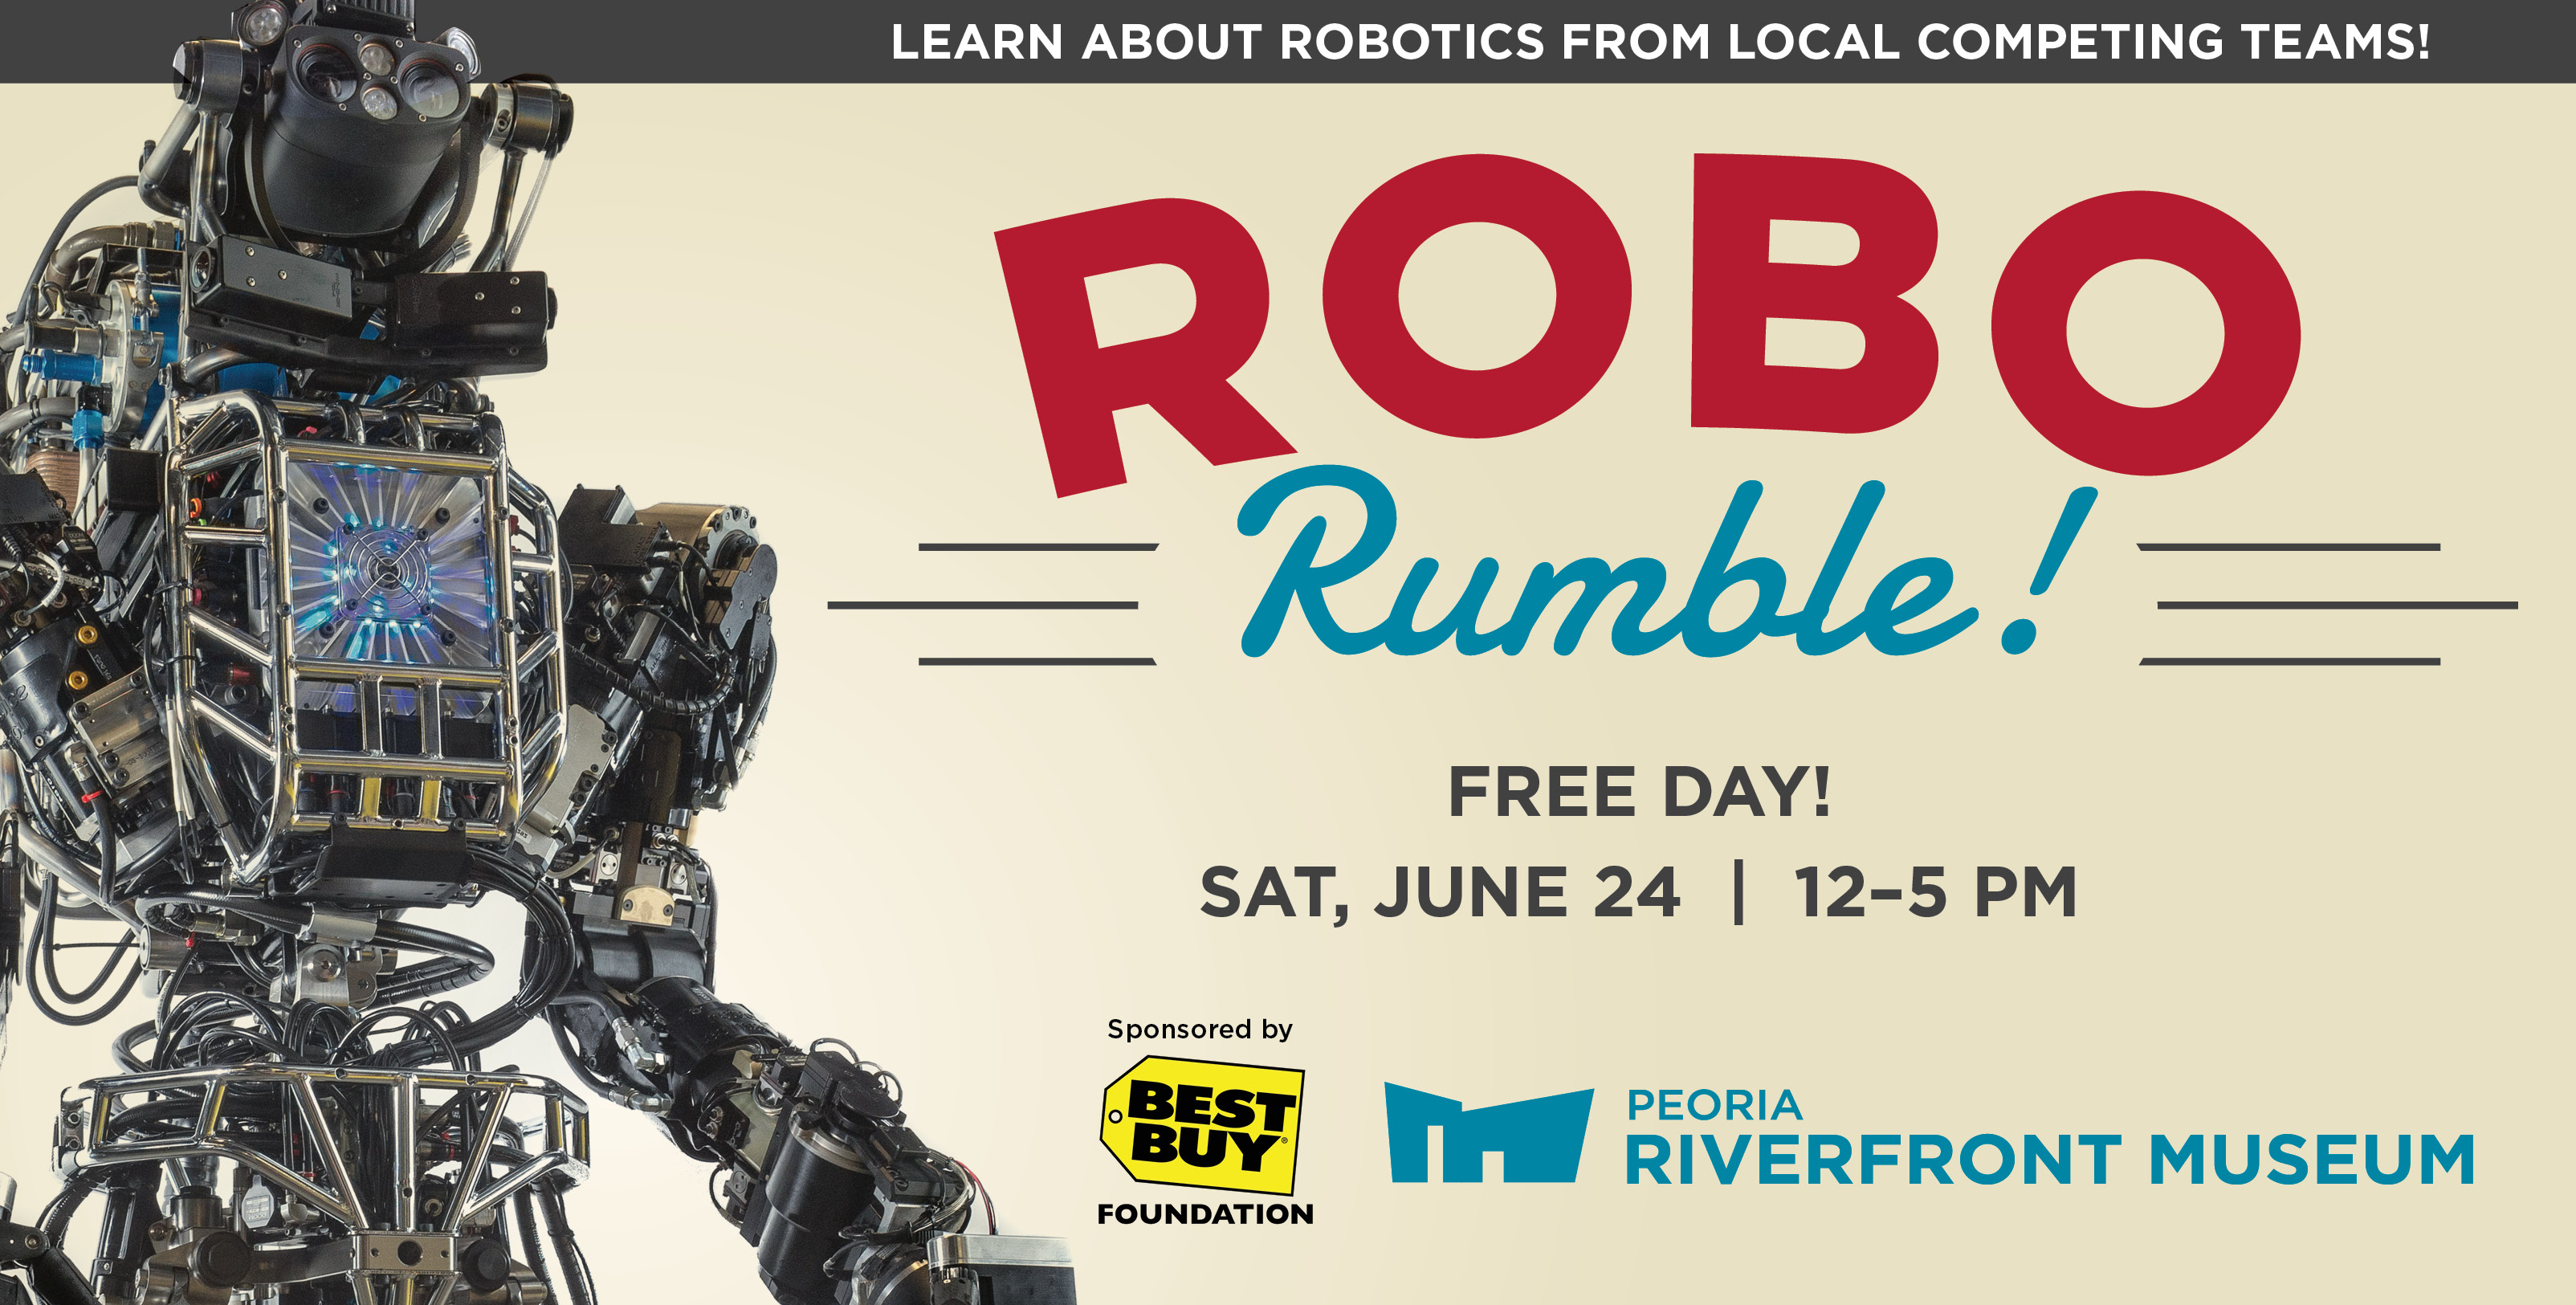 Robo Rumble 2017 Web Banner (3)